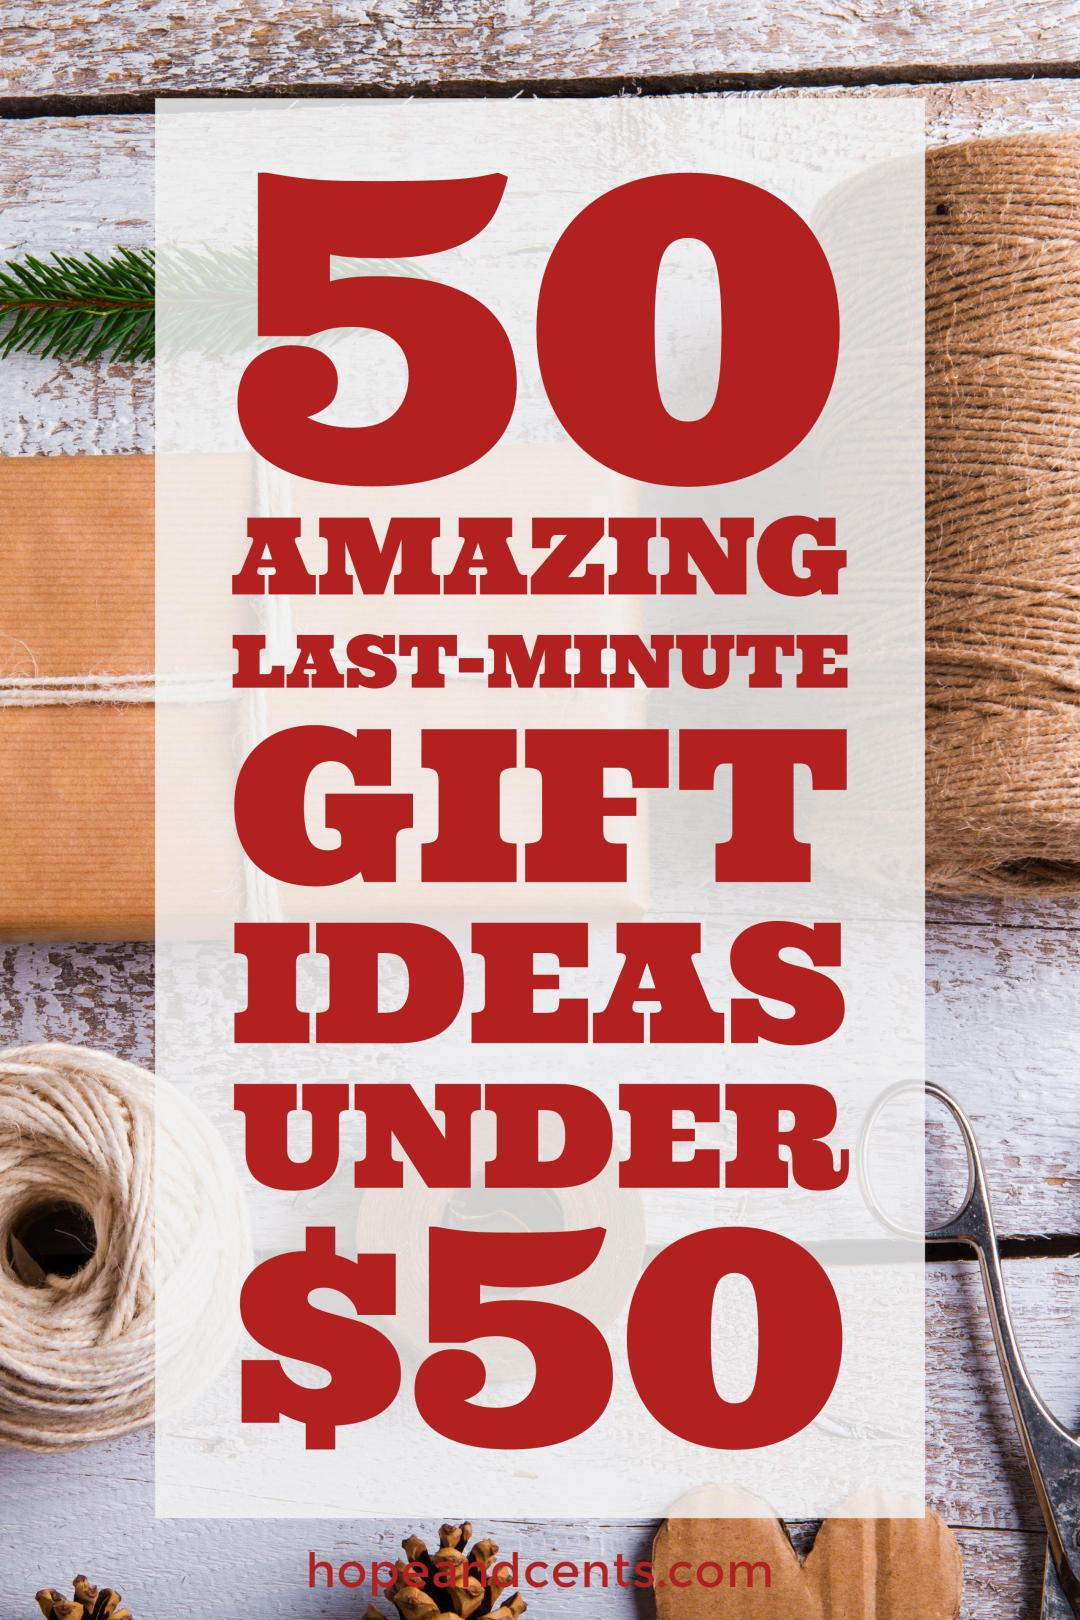 Are you looking for affordable last-minute Christmas gifts? These frugal gift ideas are under $50 and will work for everyone on your list.